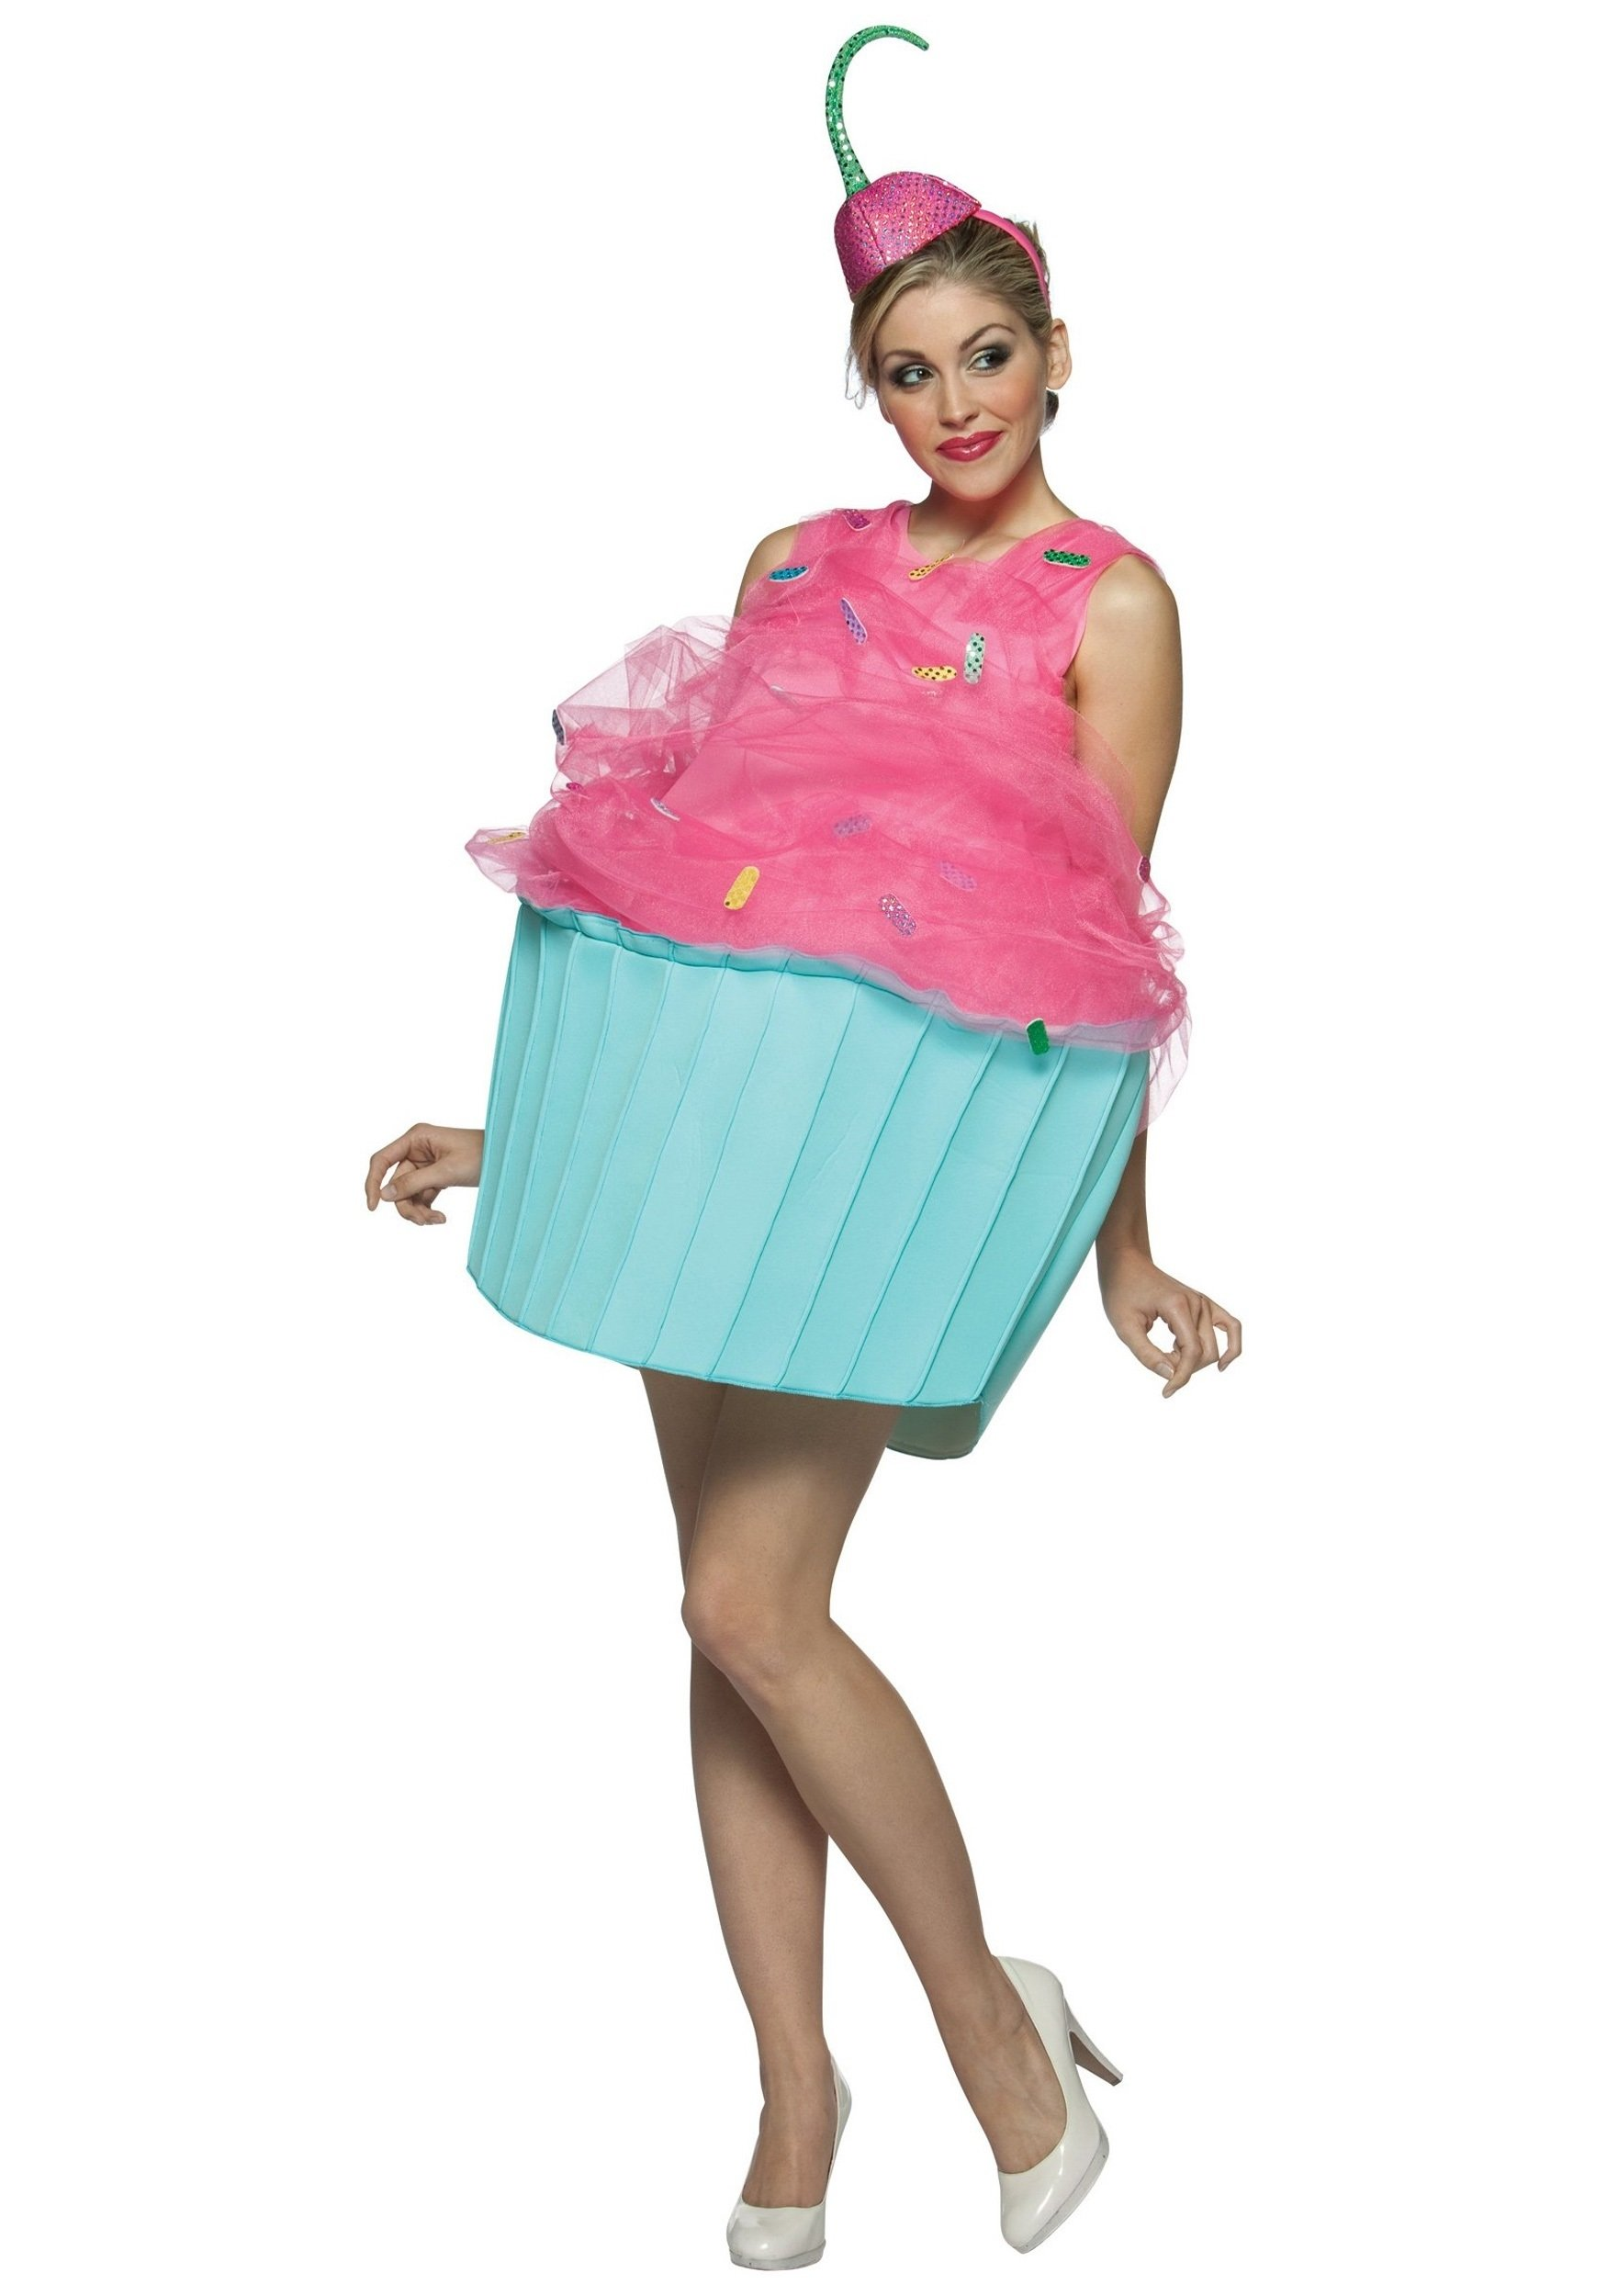 10 Famous Funny Costume Ideas For Women womens cupcake costume 2021